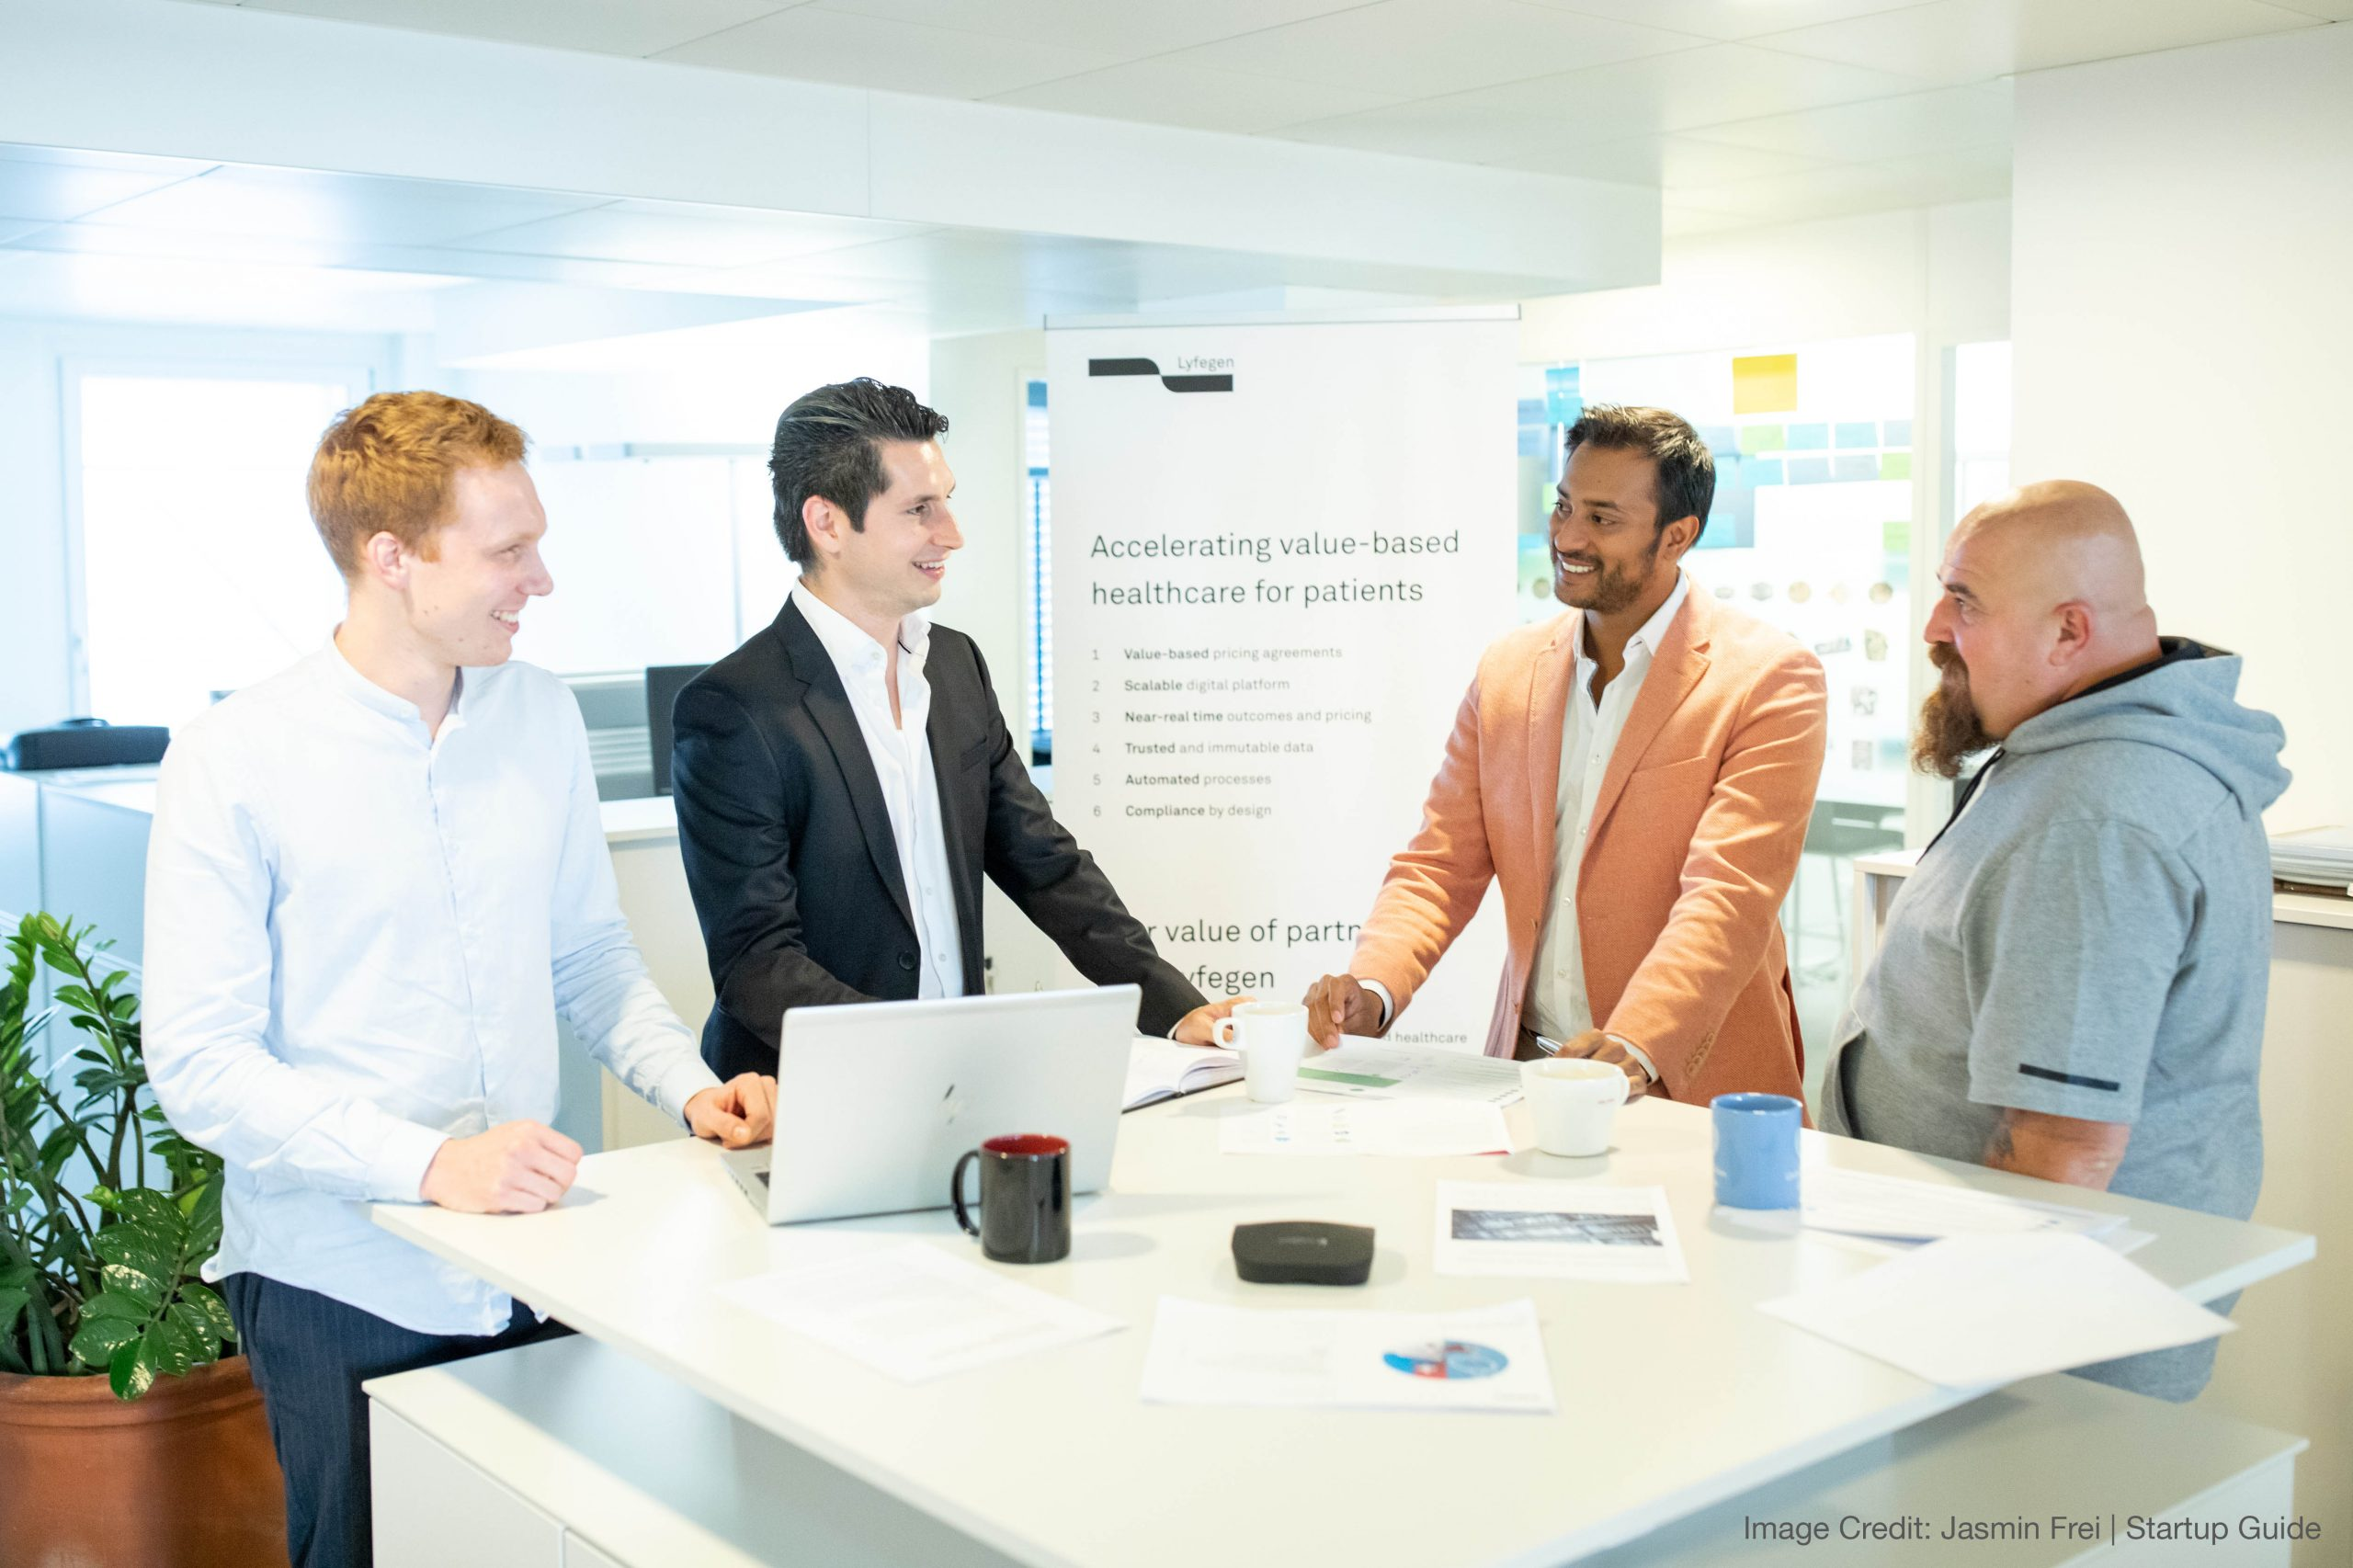 Breaking News: Lyfegen Raises Additional CHF 2 Million to Advance Value-Based Healthcare Contracting